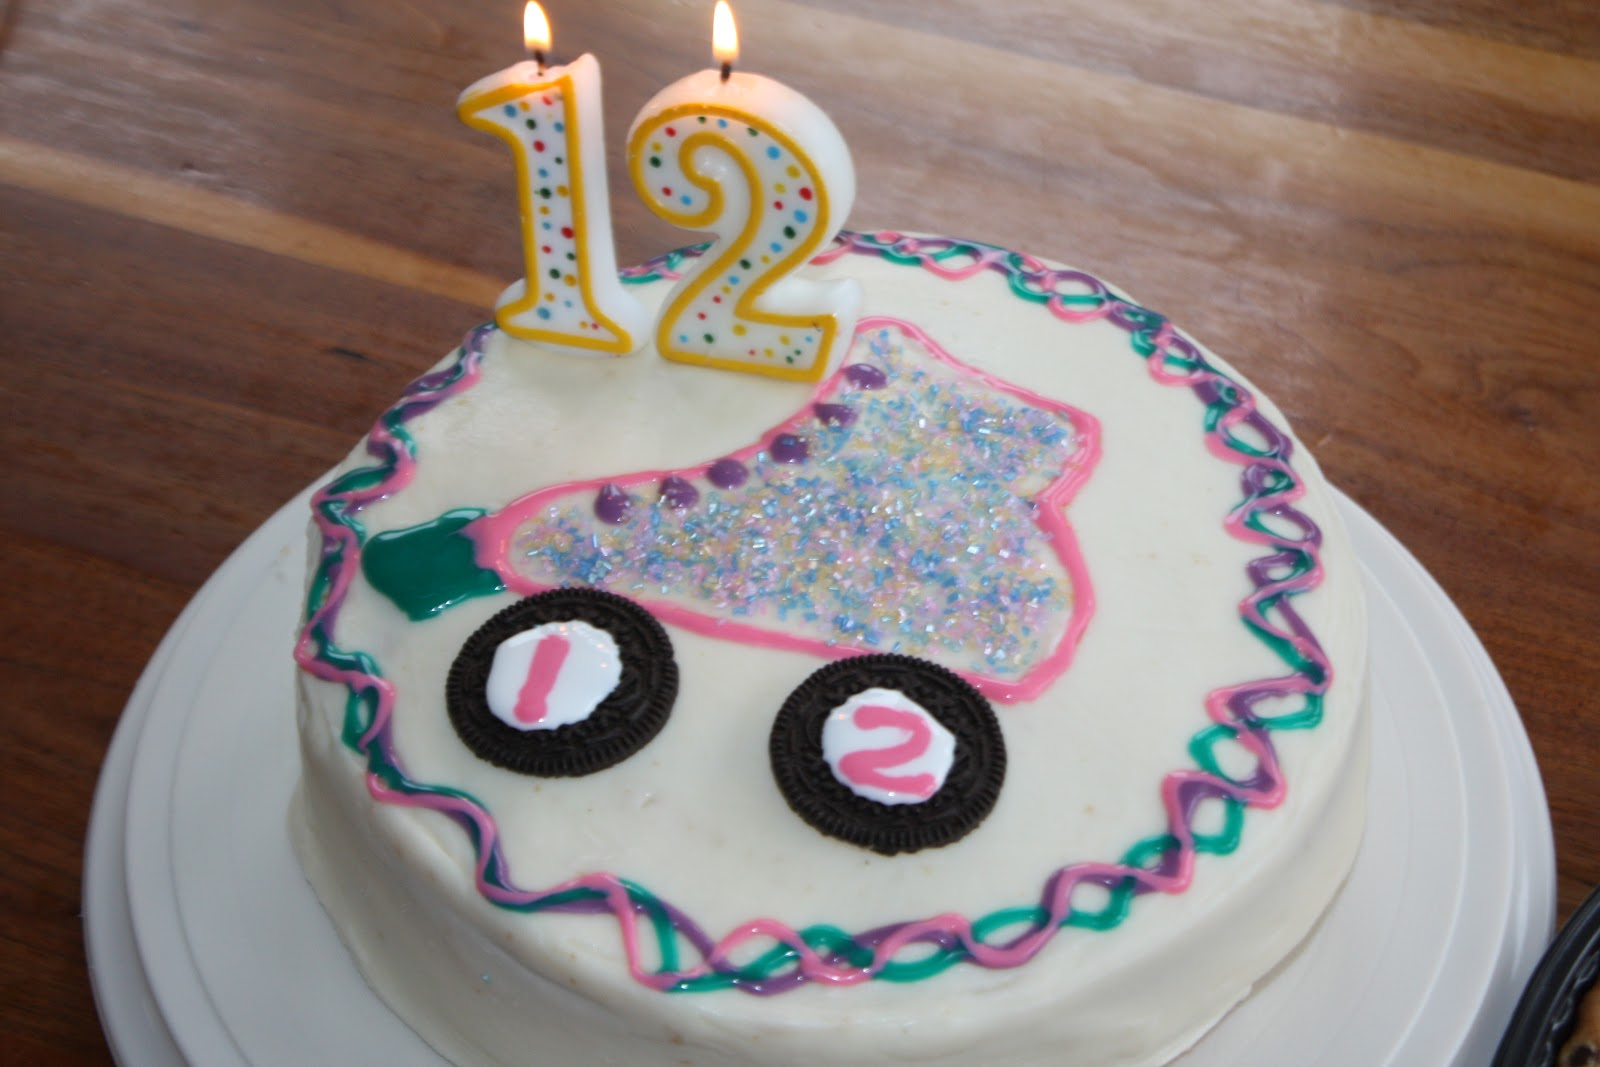 A Slice Of Smith Life 12th Birthday Cake Let The Good